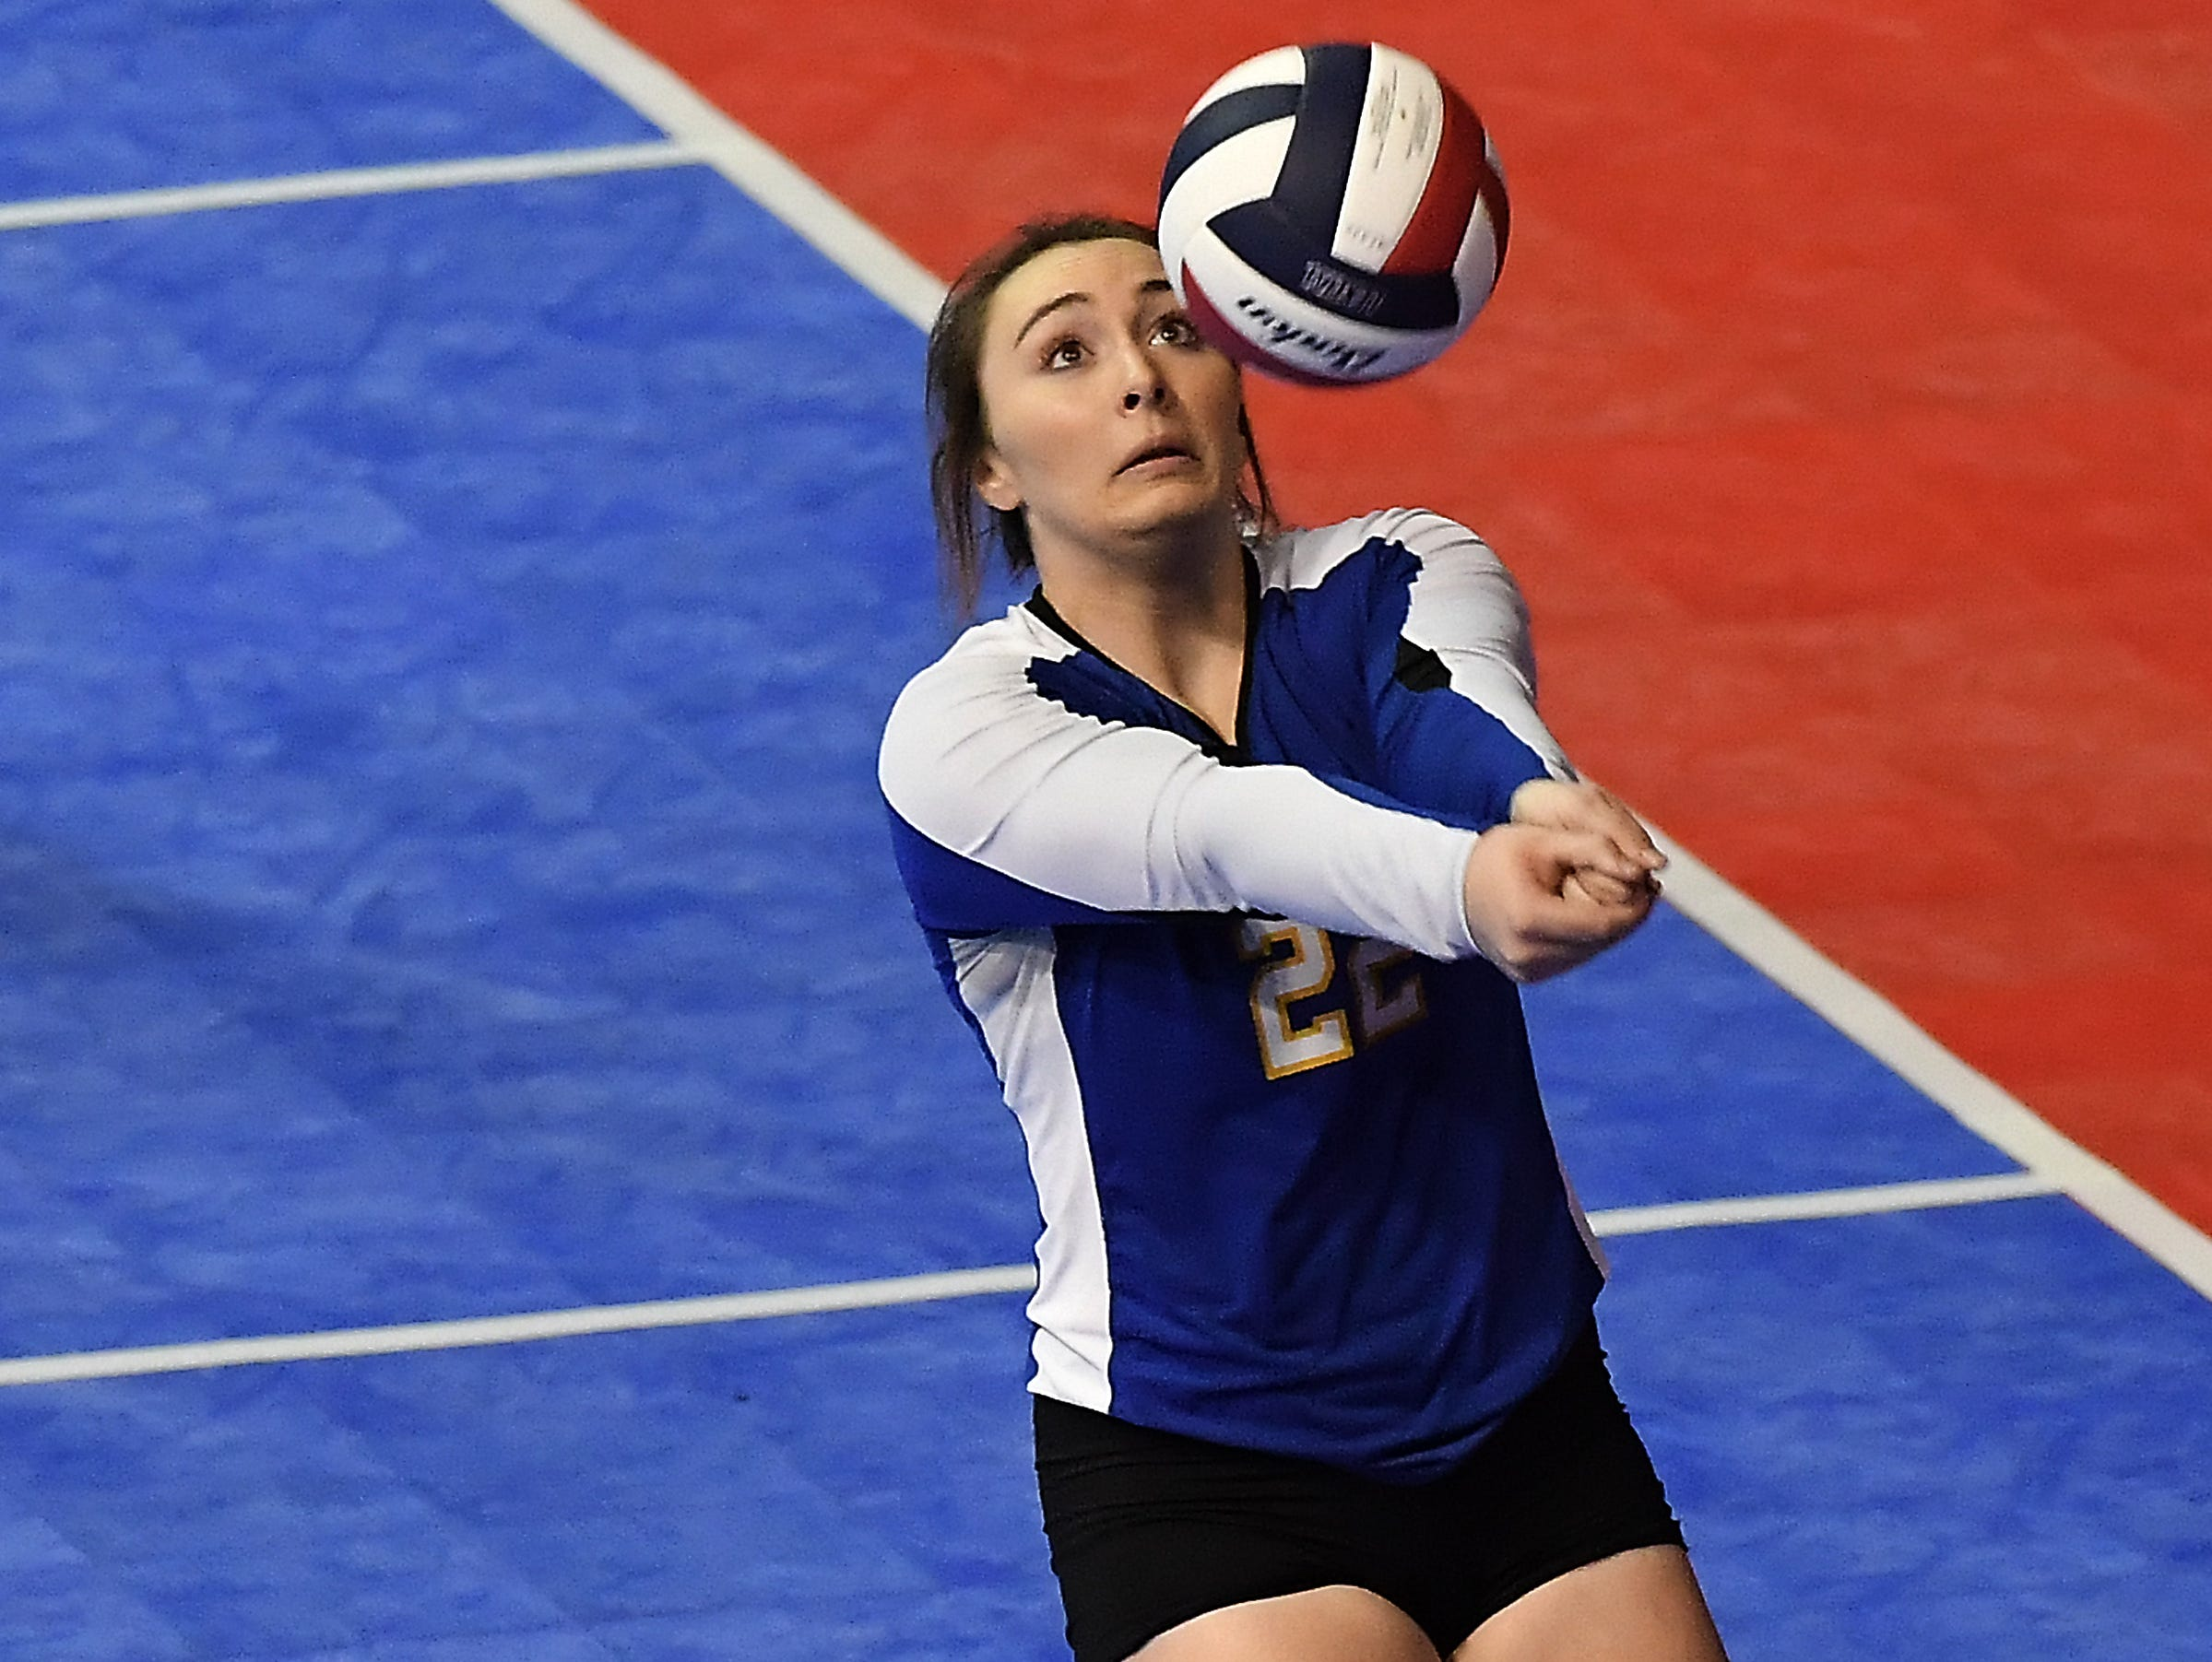 Shaann Danelson of Scobey makes a play on the ball against Ennis at the All-Class State Volleyball Tournament at the Brick Breeden Fieldhouse in Bozeman.